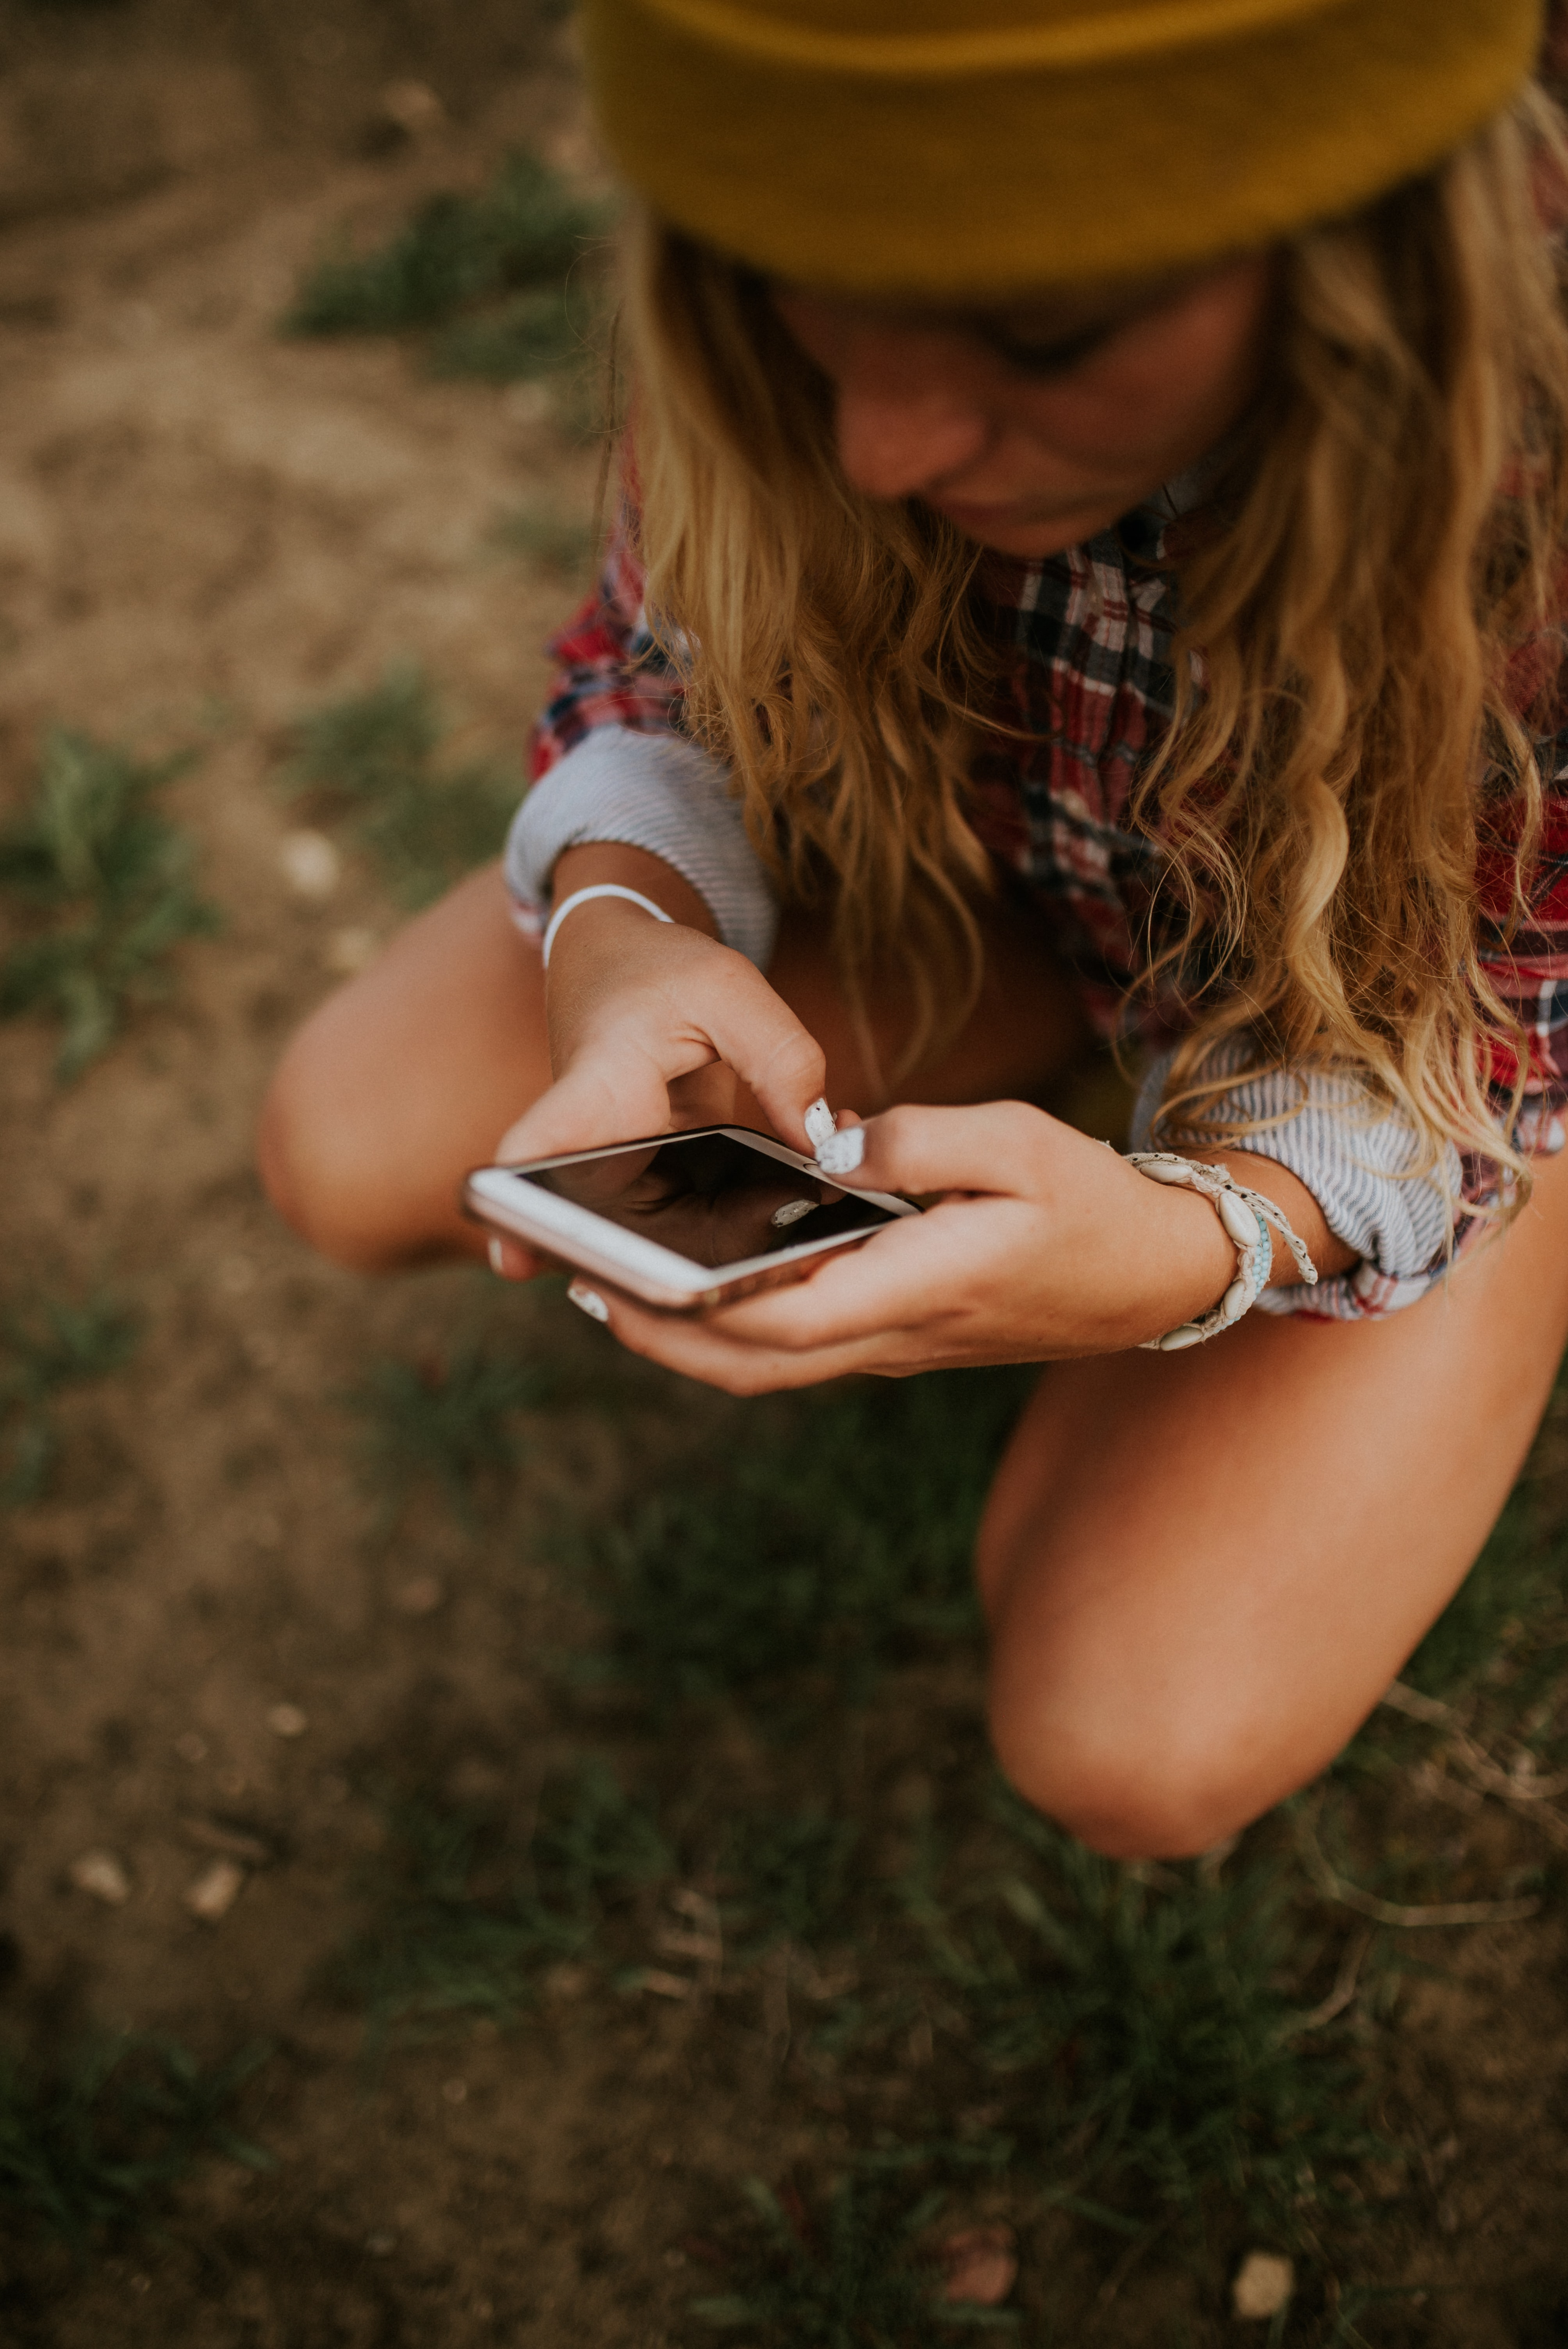 woman squatting on grass field while using white smartphone